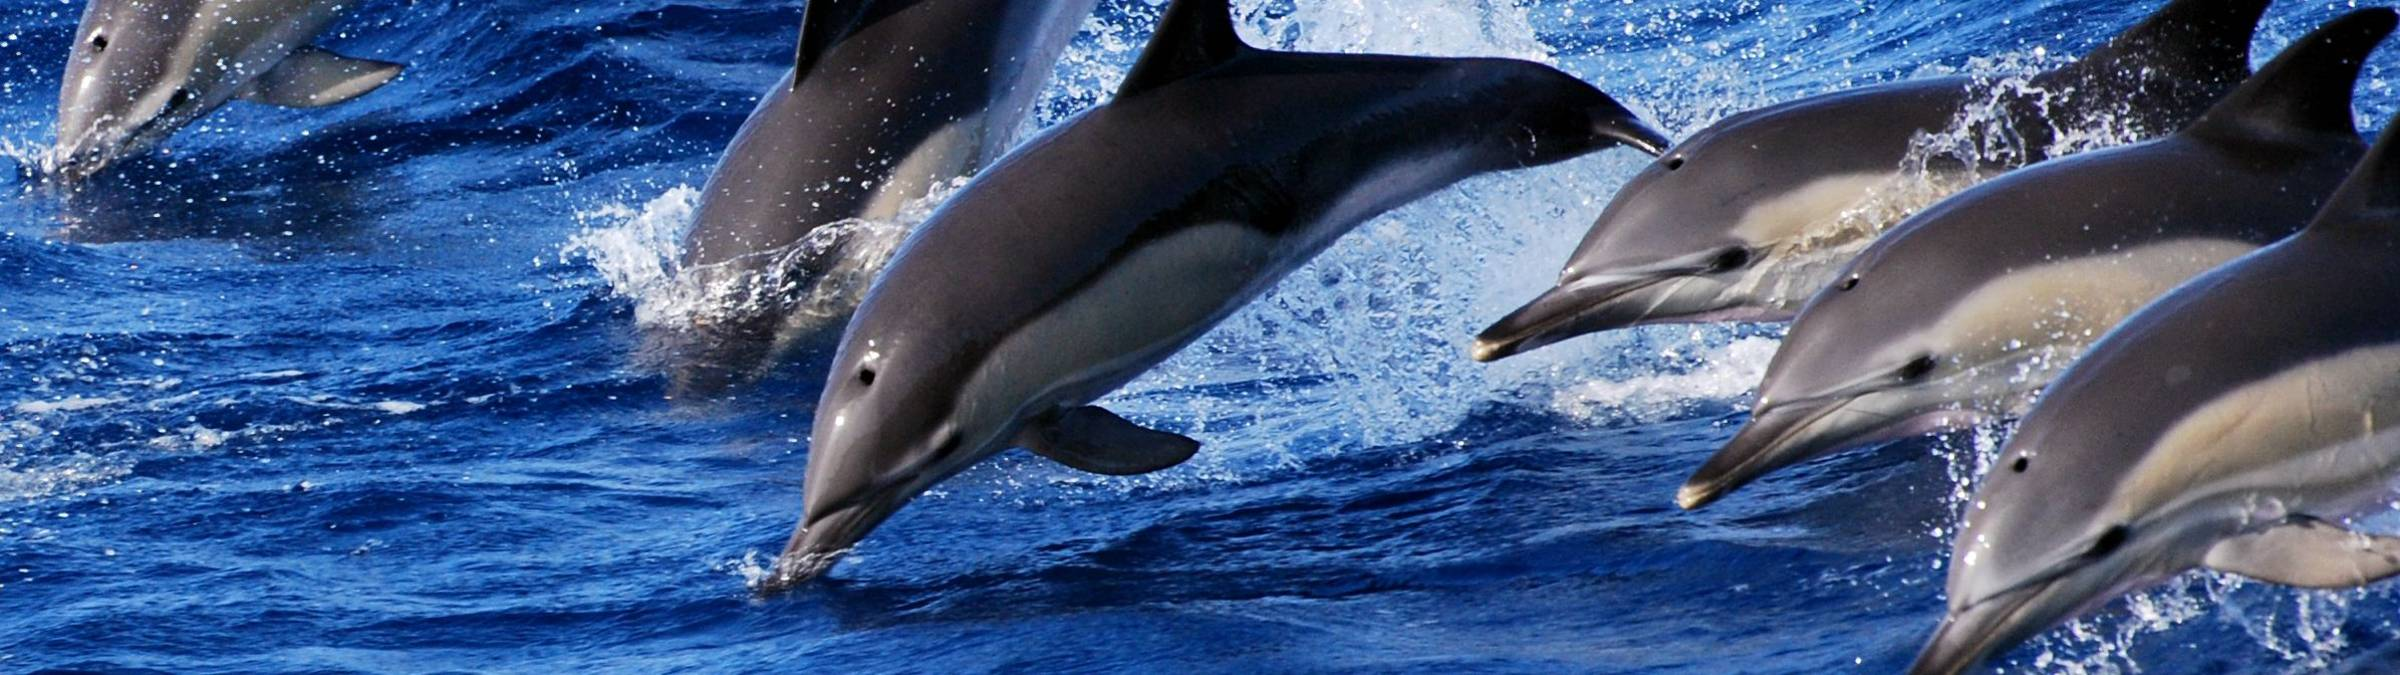 Swimming With Dolphins   Credit Futurismo Azores Adventure